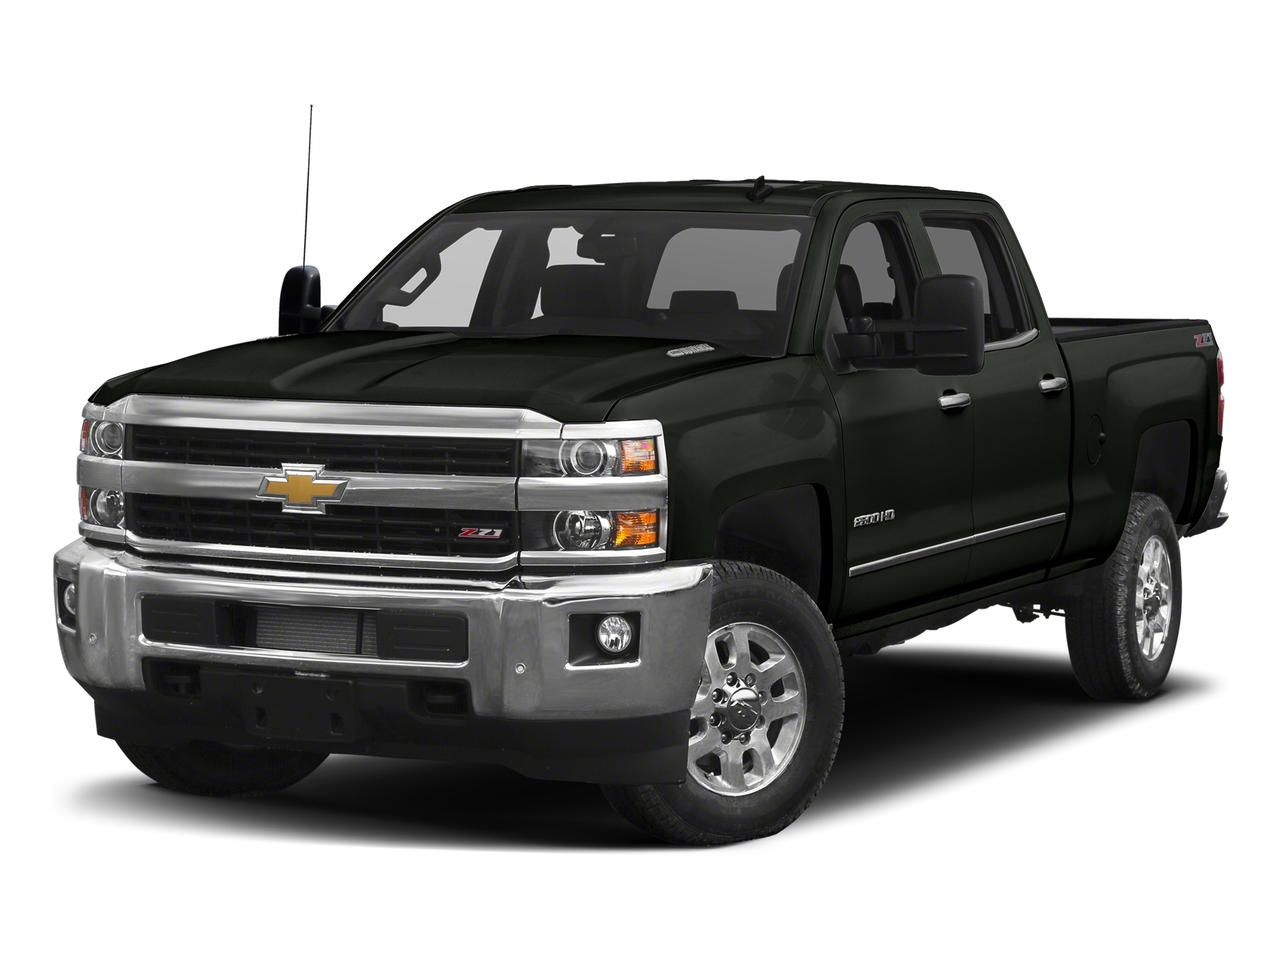 Graphite Metallic 2018 Chevrolet Silverado 2500HD LTZ Crew Cab Pickup Wake Forest NC